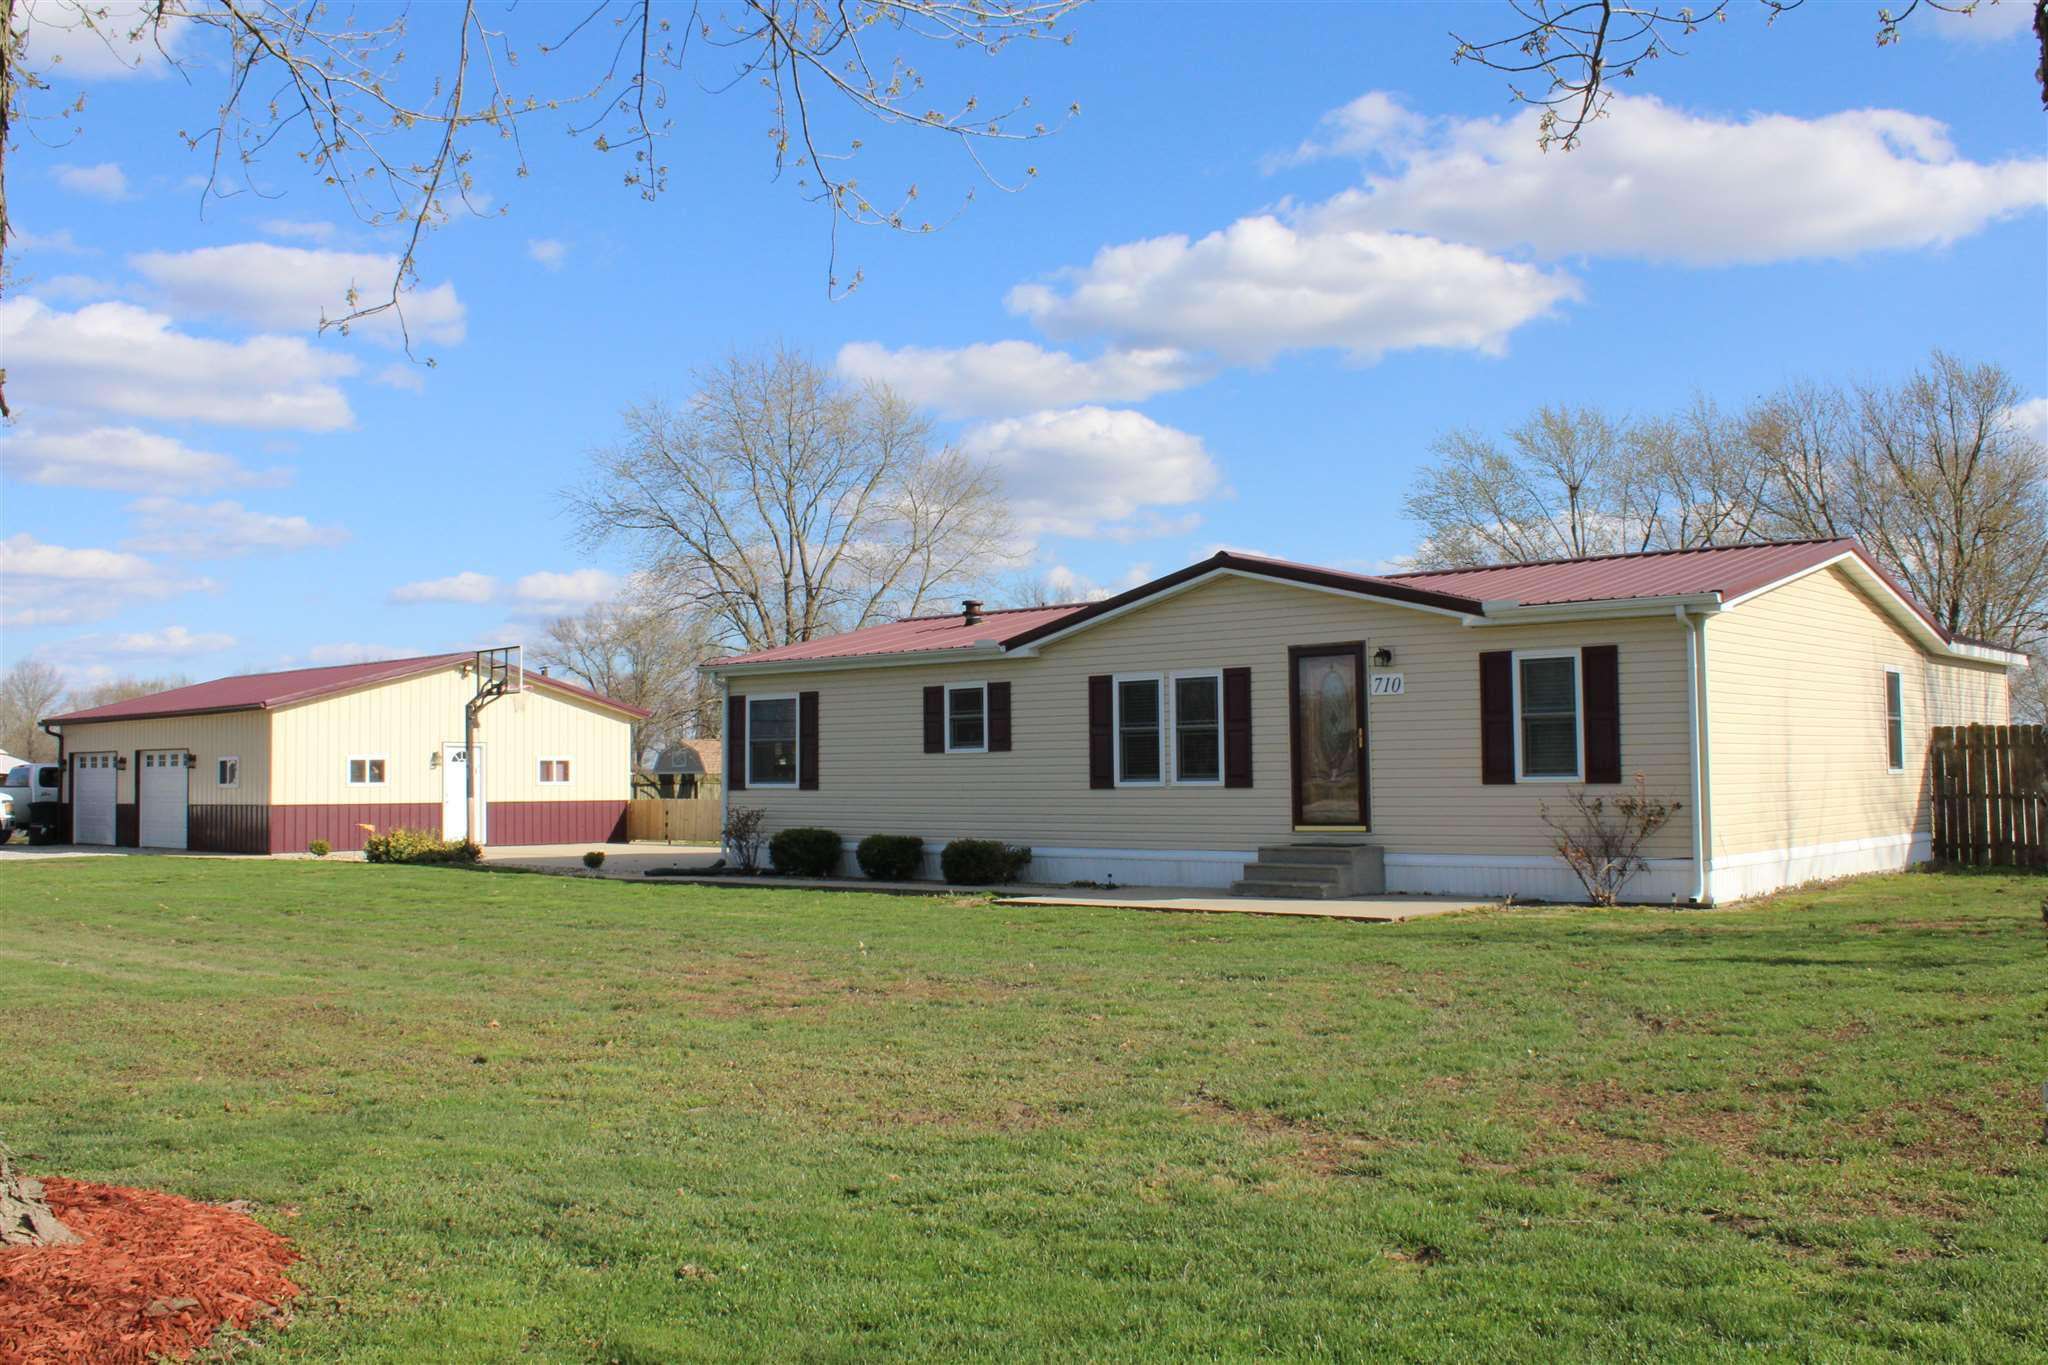 710 THOMAS Property Photo - Iuka, IL real estate listing